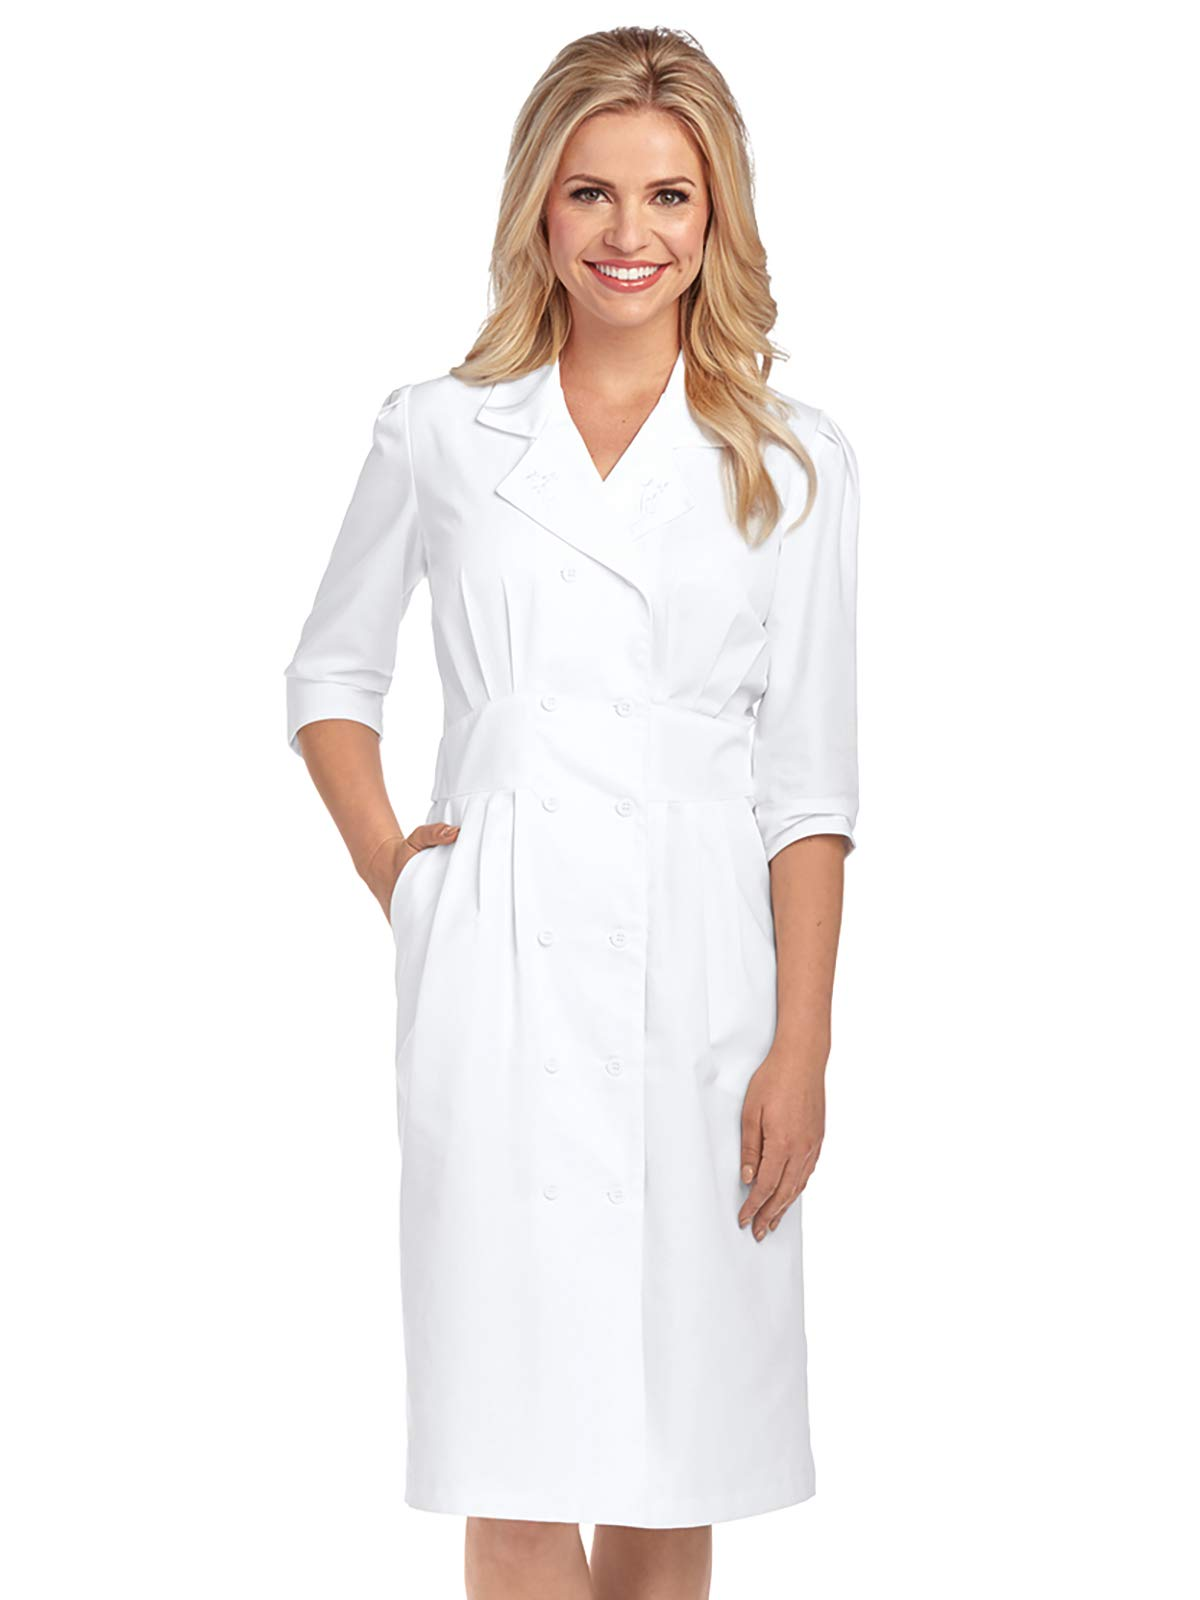 Barco Prima Uniforms 58505 Double Breasted Button Front Dress White L by Barco